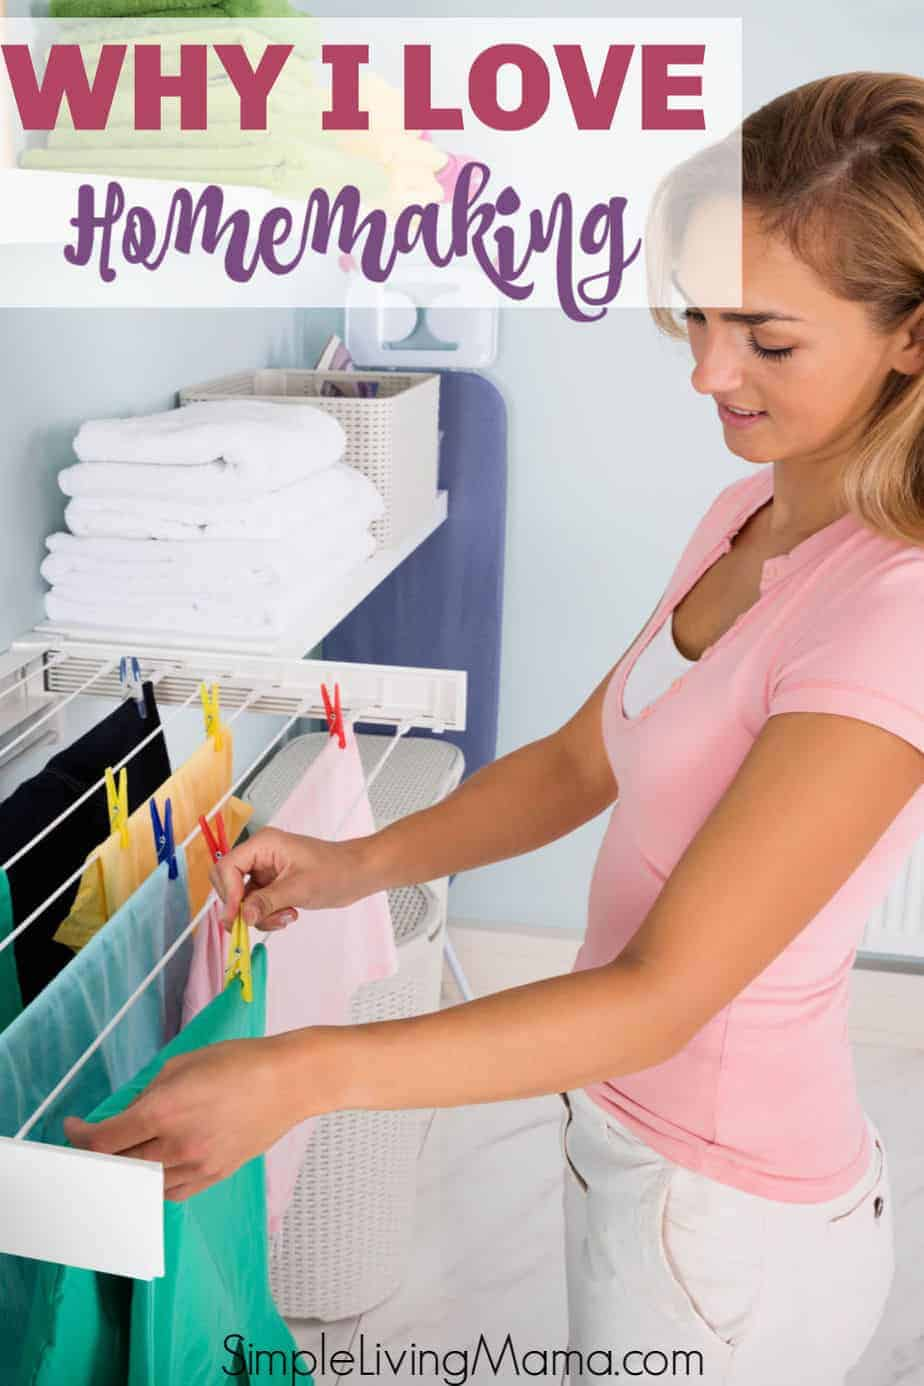 How to be a happy homemaker